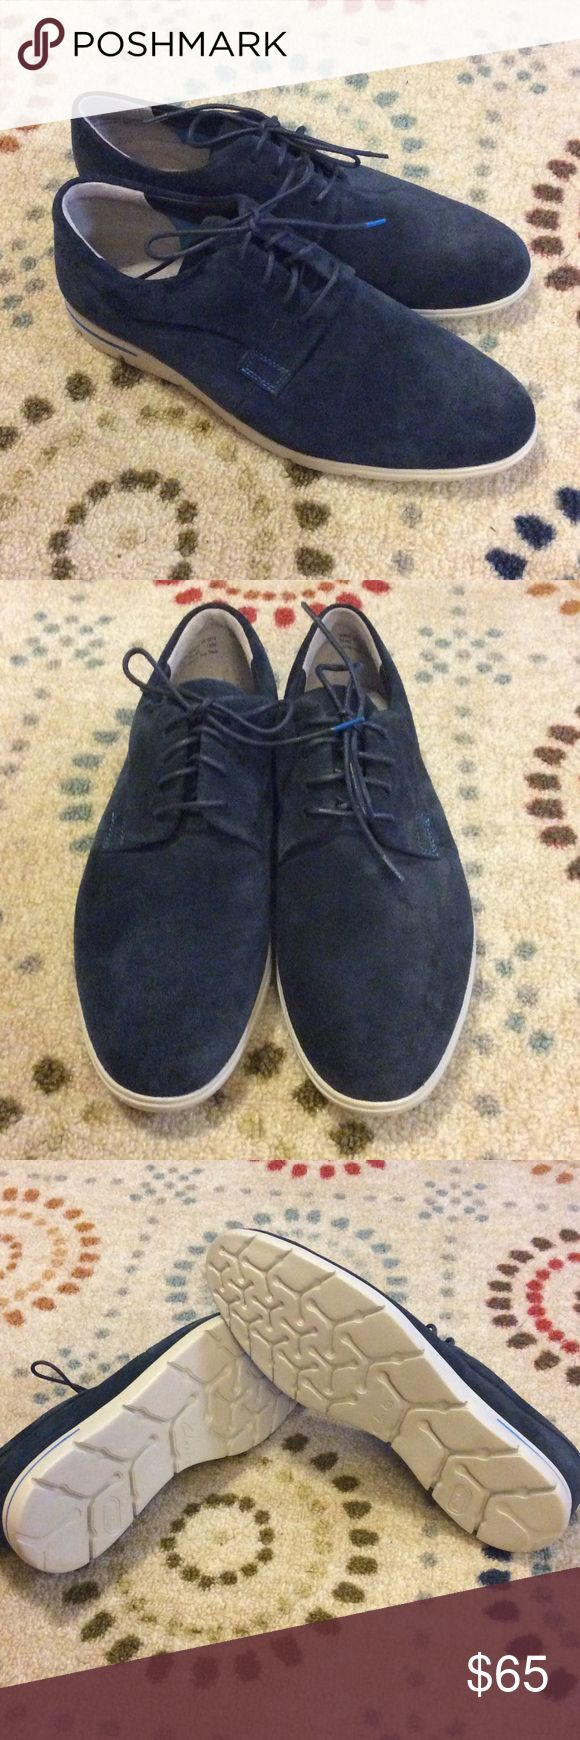 Men's Suede Clarks Shoes Men's Clarks shoes in great condition, Navy blue upper and white soles. Clarks Shoes Oxfords & Derbys